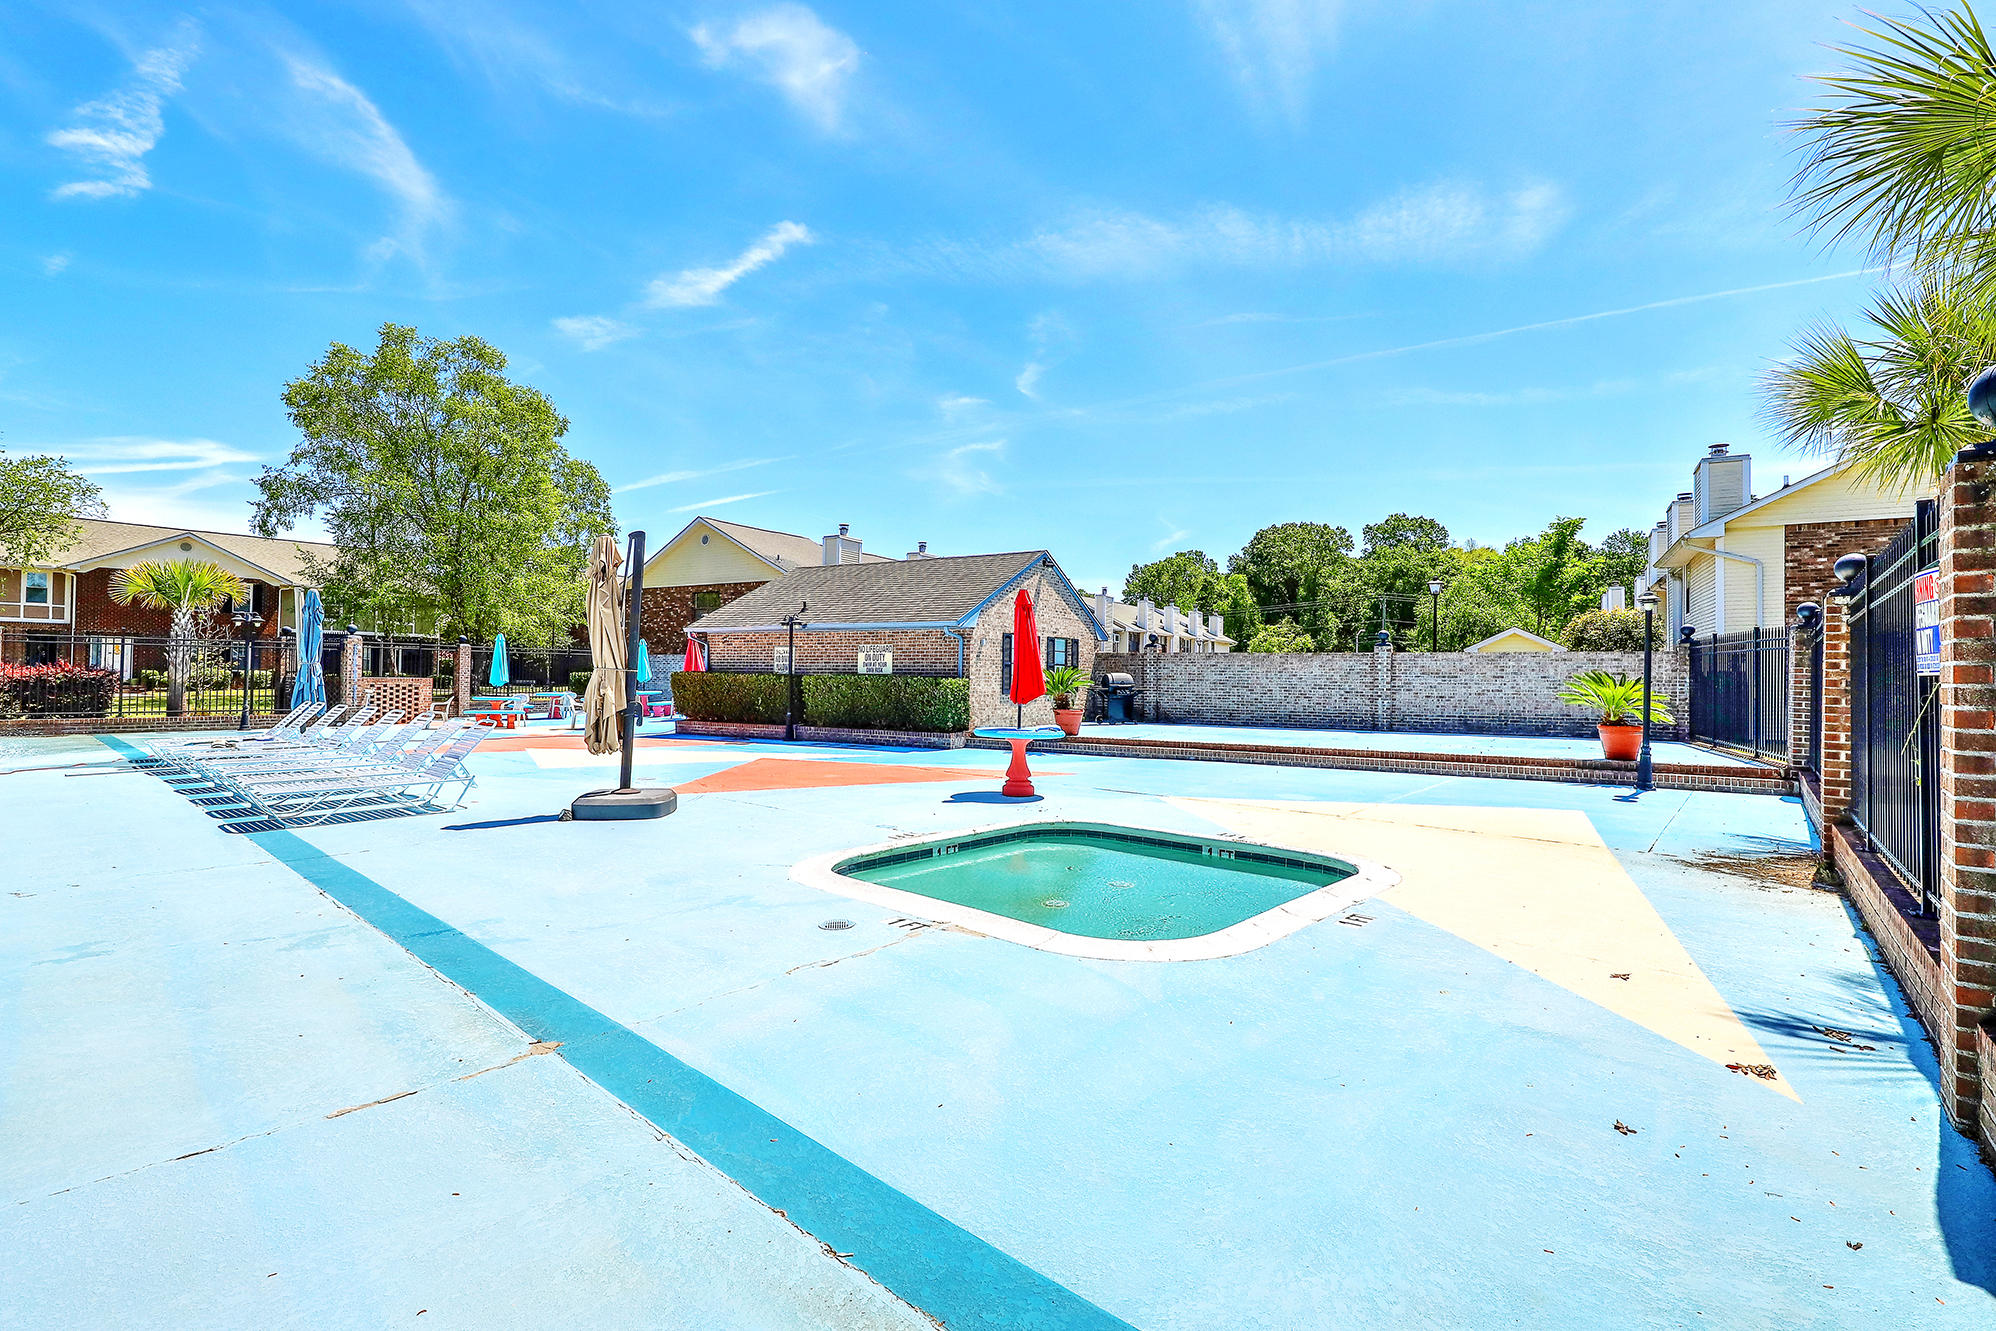 Old Towne Villas Homes For Sale - 2921 Cathedral, Charleston, SC - 2